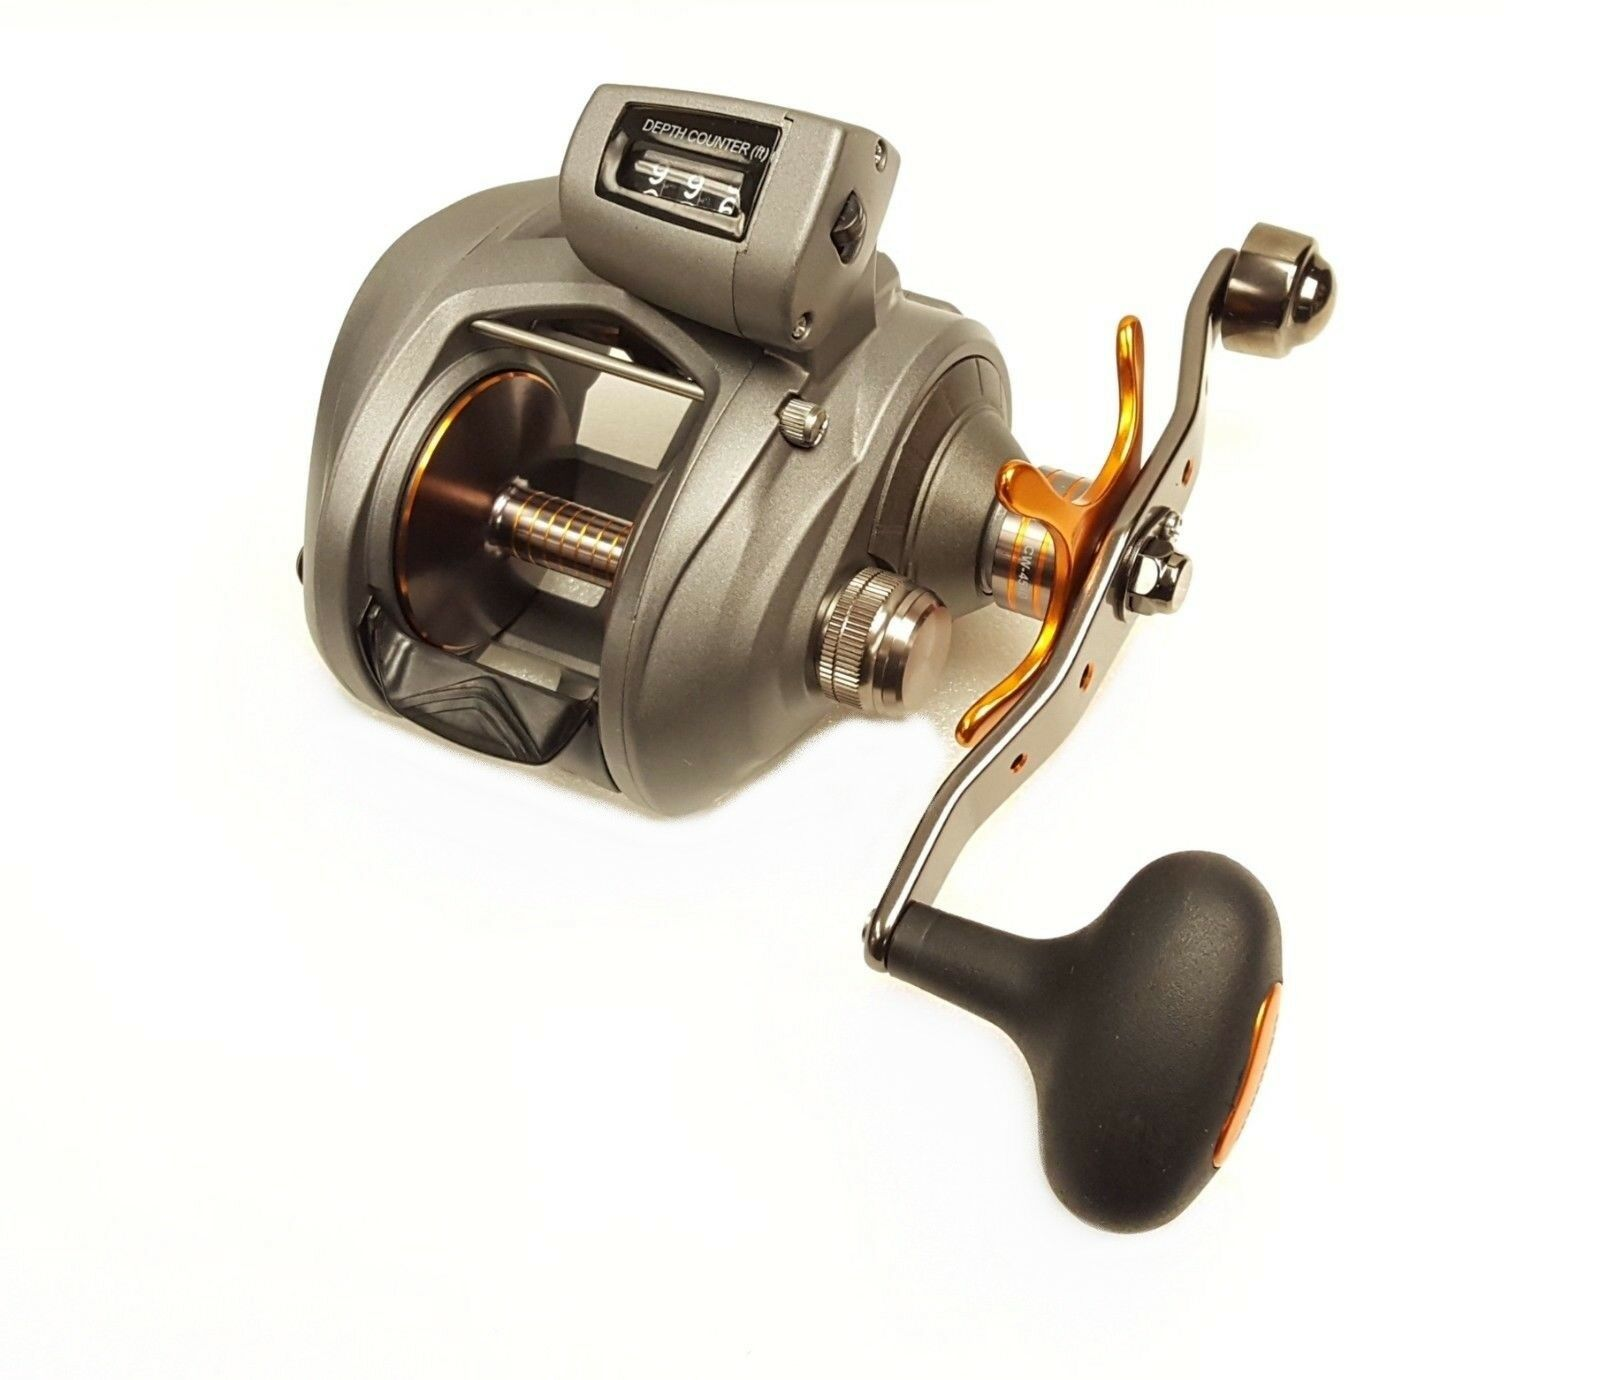 Okuma Cold Water Line Counter 5.4 1 Baitcast Reel, Right Hand - CW-454D